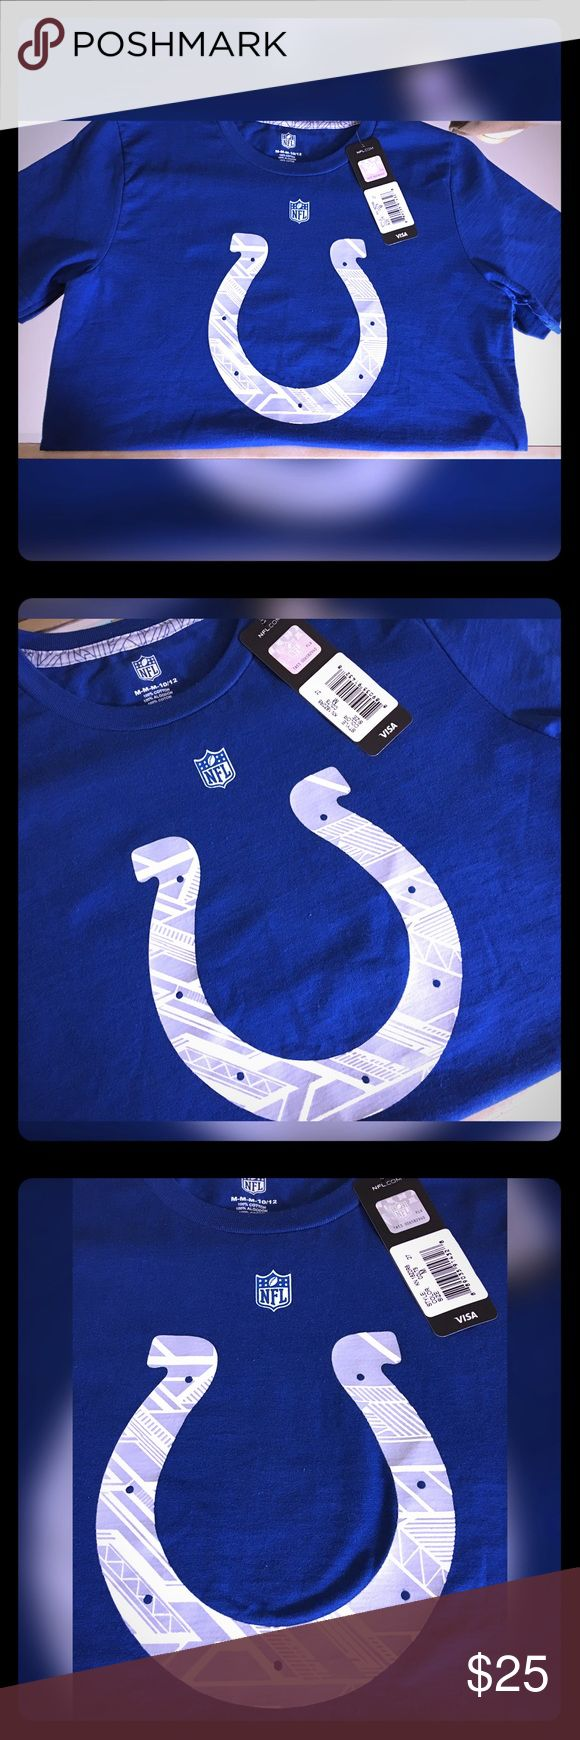 Colts NFL Team Apparel T shirt Size Youth Medium Colts NFL Team Apparel T shirt Size Youth Medium. NWT. NFL Team Apparel Shirts & Tops Tees - Short Sleeve